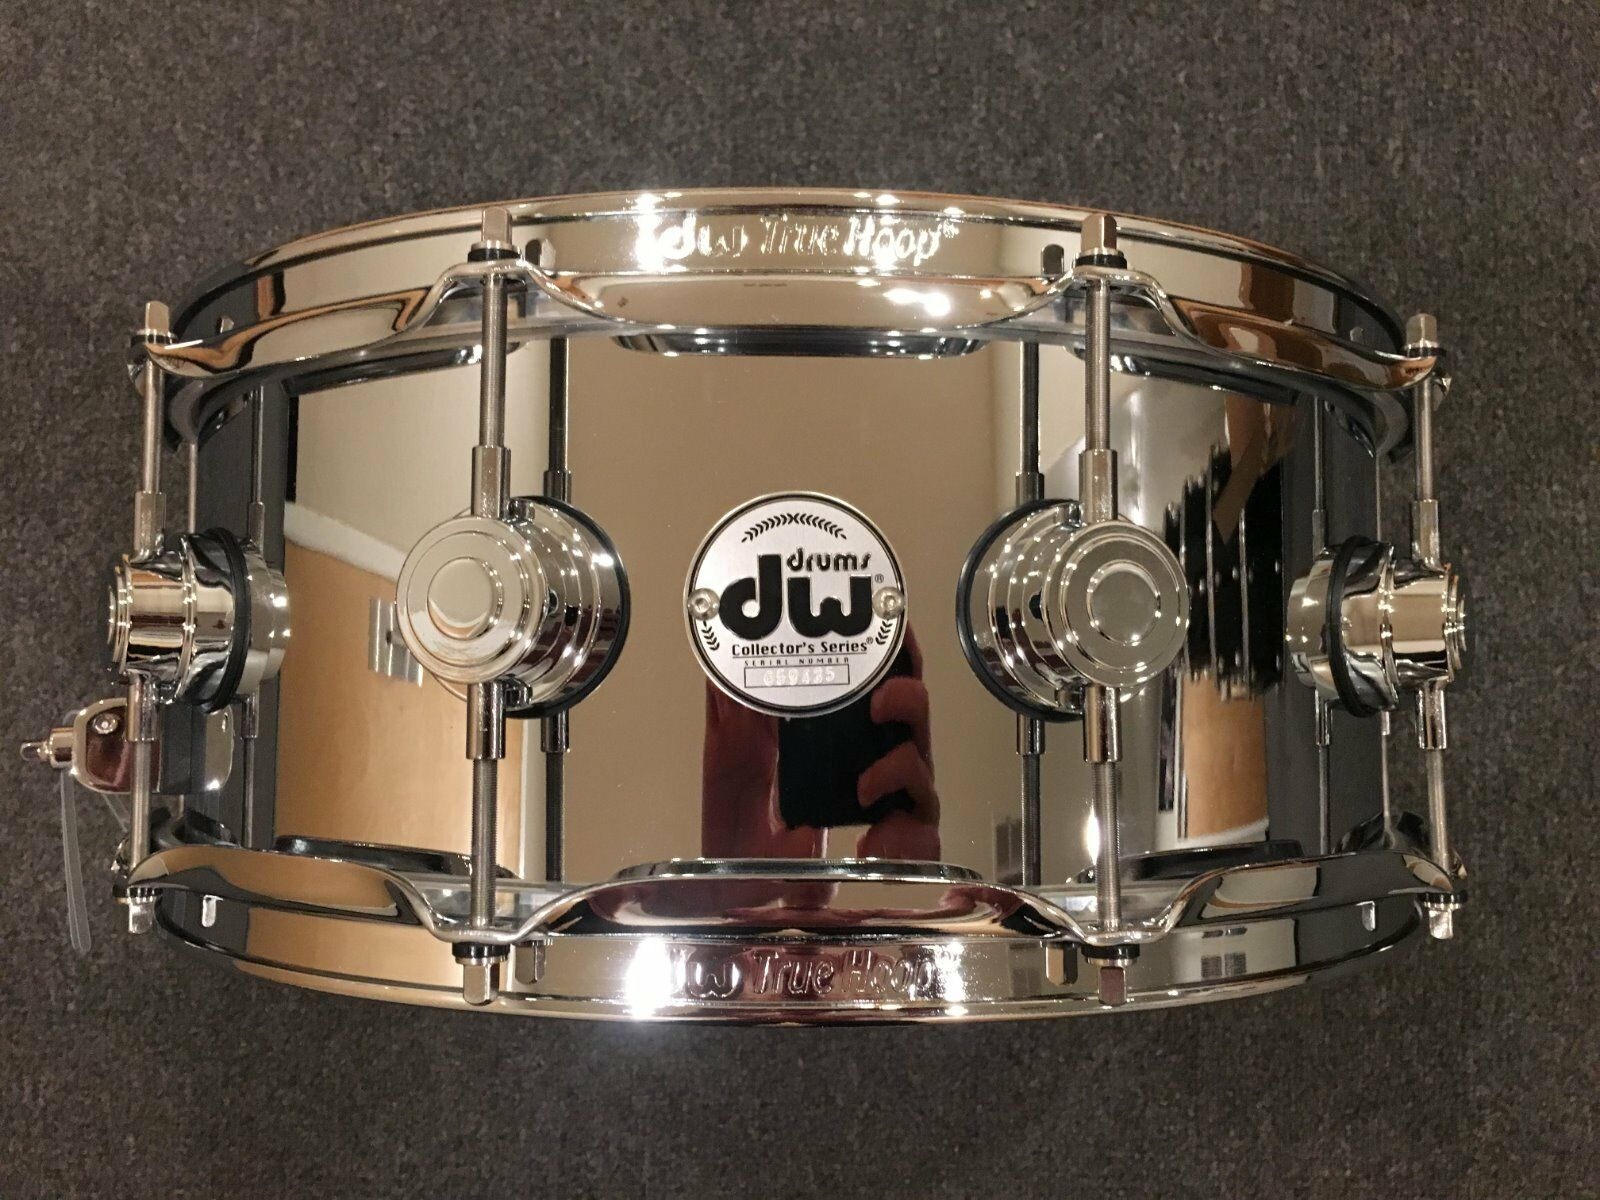 DW Collector's Series 5.5x14 Steel Chrome Polished Snare w Chrome Hardware